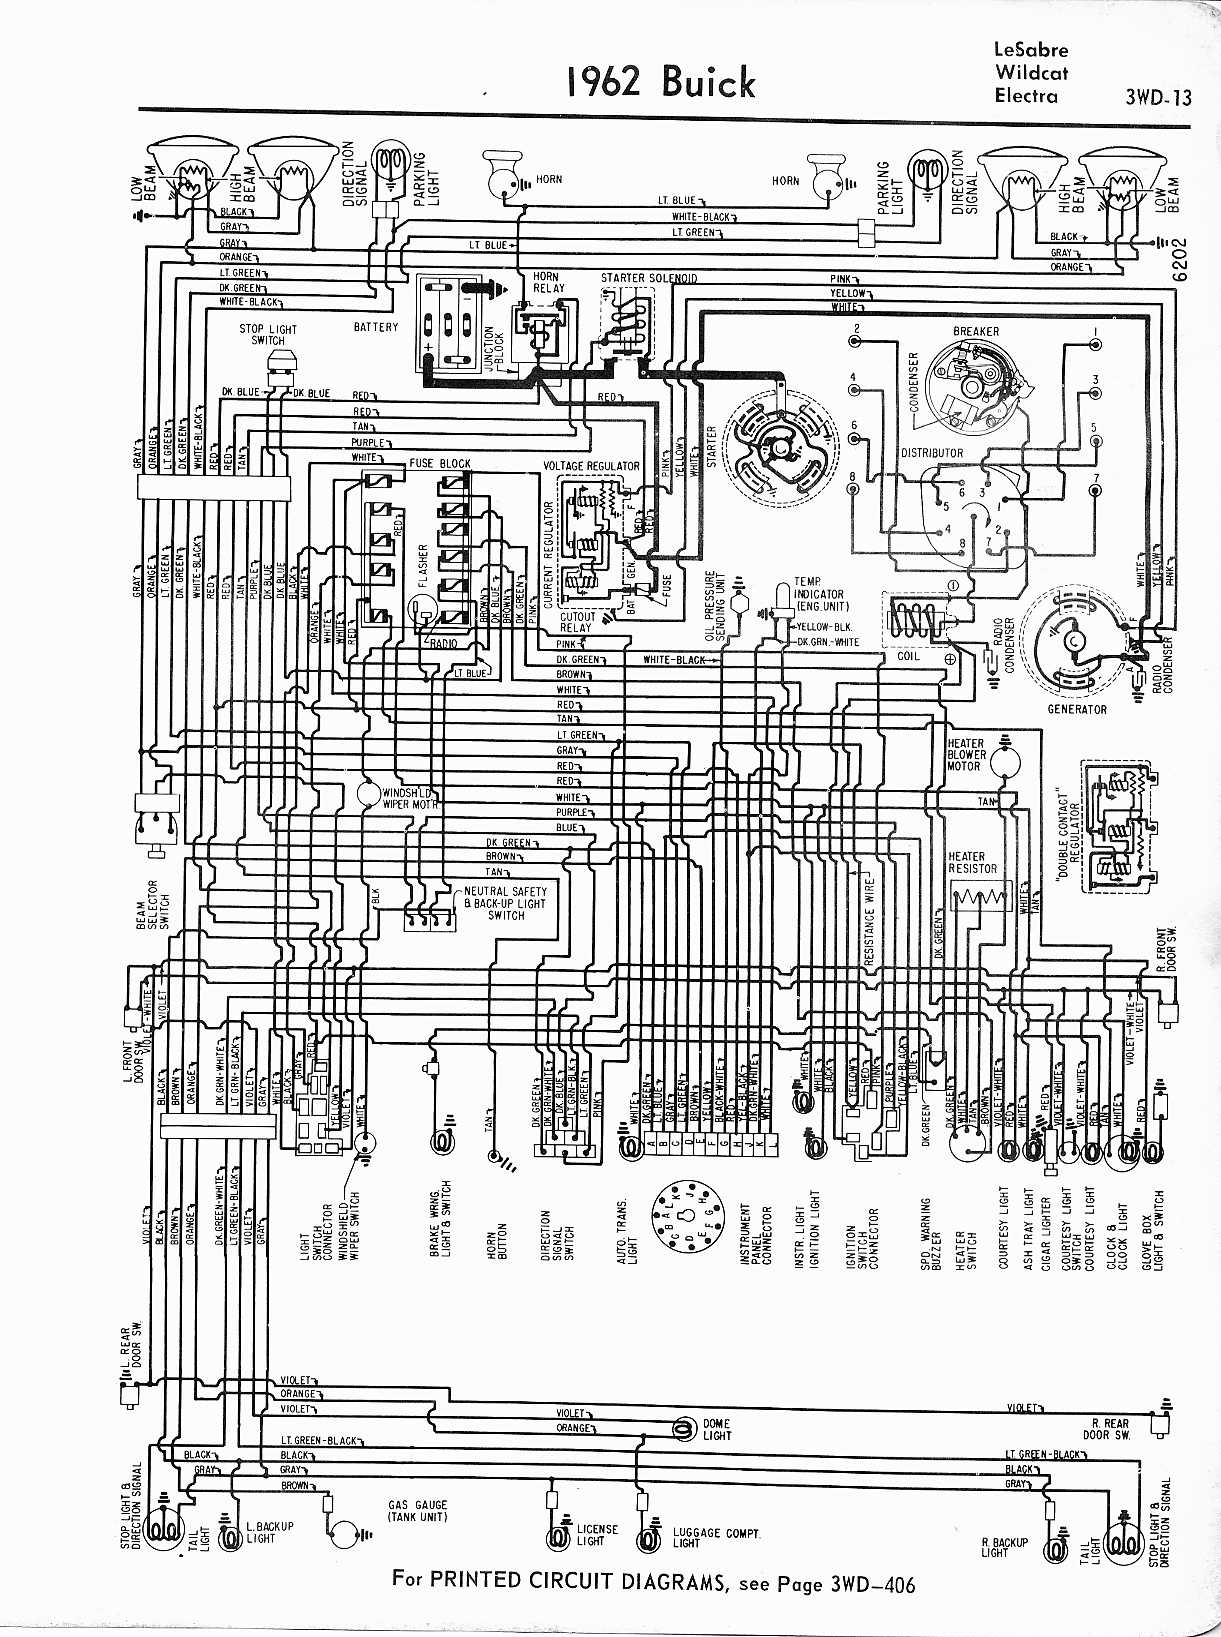 1972 Buick Skylark Wiring Schematic Library 1958 Ford Ranchero Headlight Switch Diagram Diagrams 1957 1965 Rh Oldcarmanualproject Com